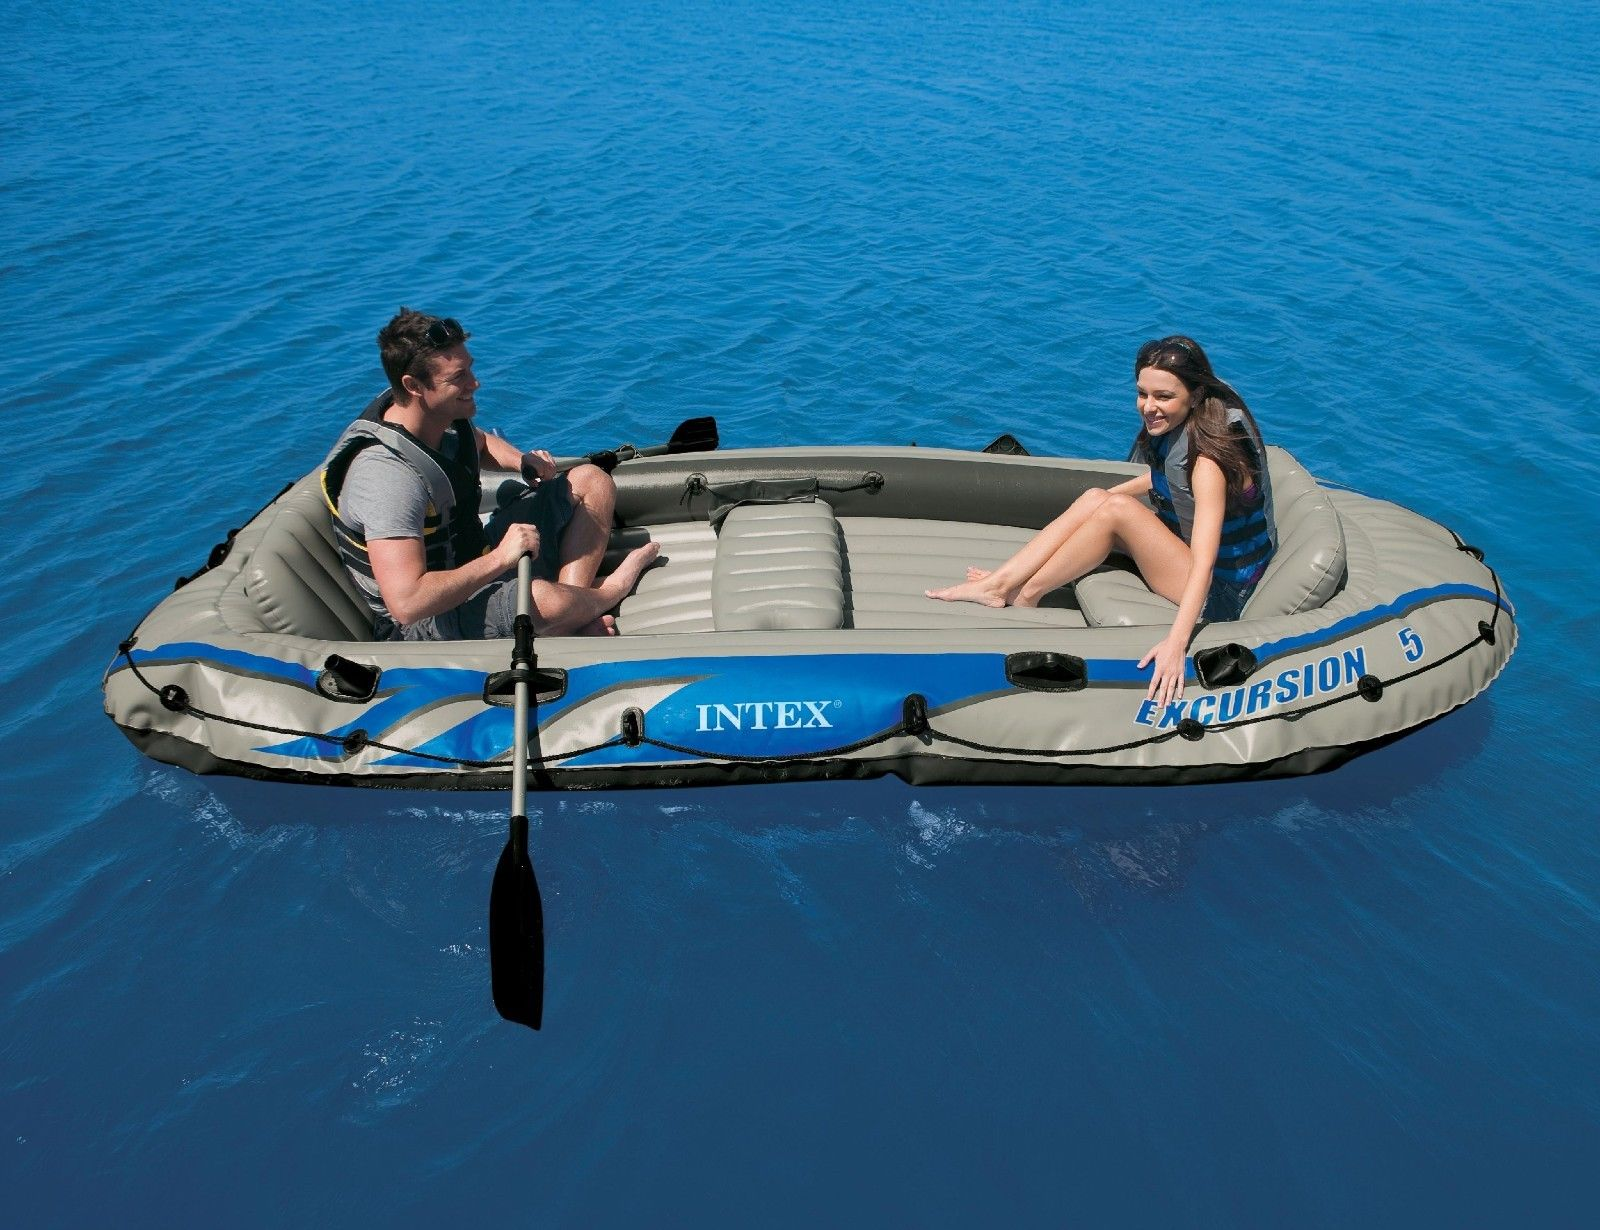 Intex Boats Images - Reverse Search